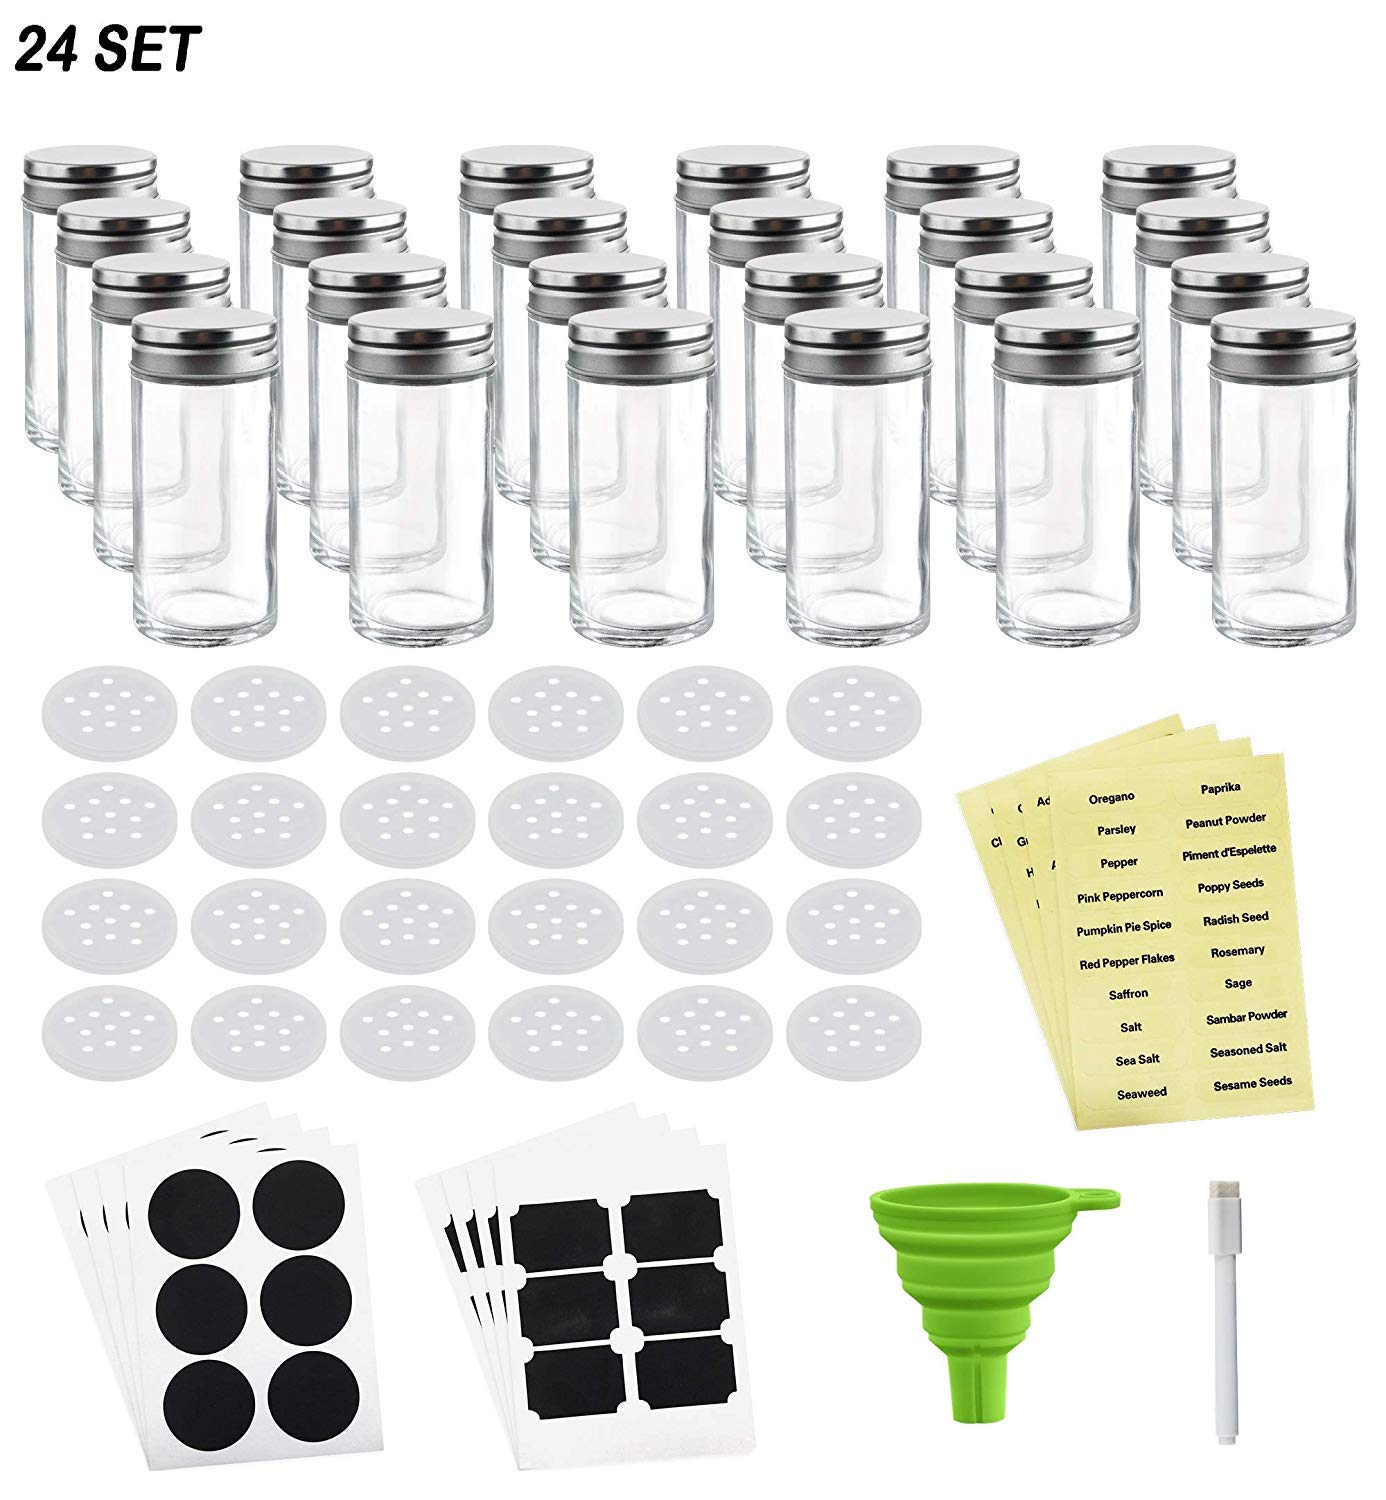 Nellam French Round Glass Spice Jars - Set of 24 with Shaker Lids and Chalkboard Sticker Labels, Small 4oz Bottles - Stackable Herbs and Spices Containers - Decorative Organizers in Silver by Nellam